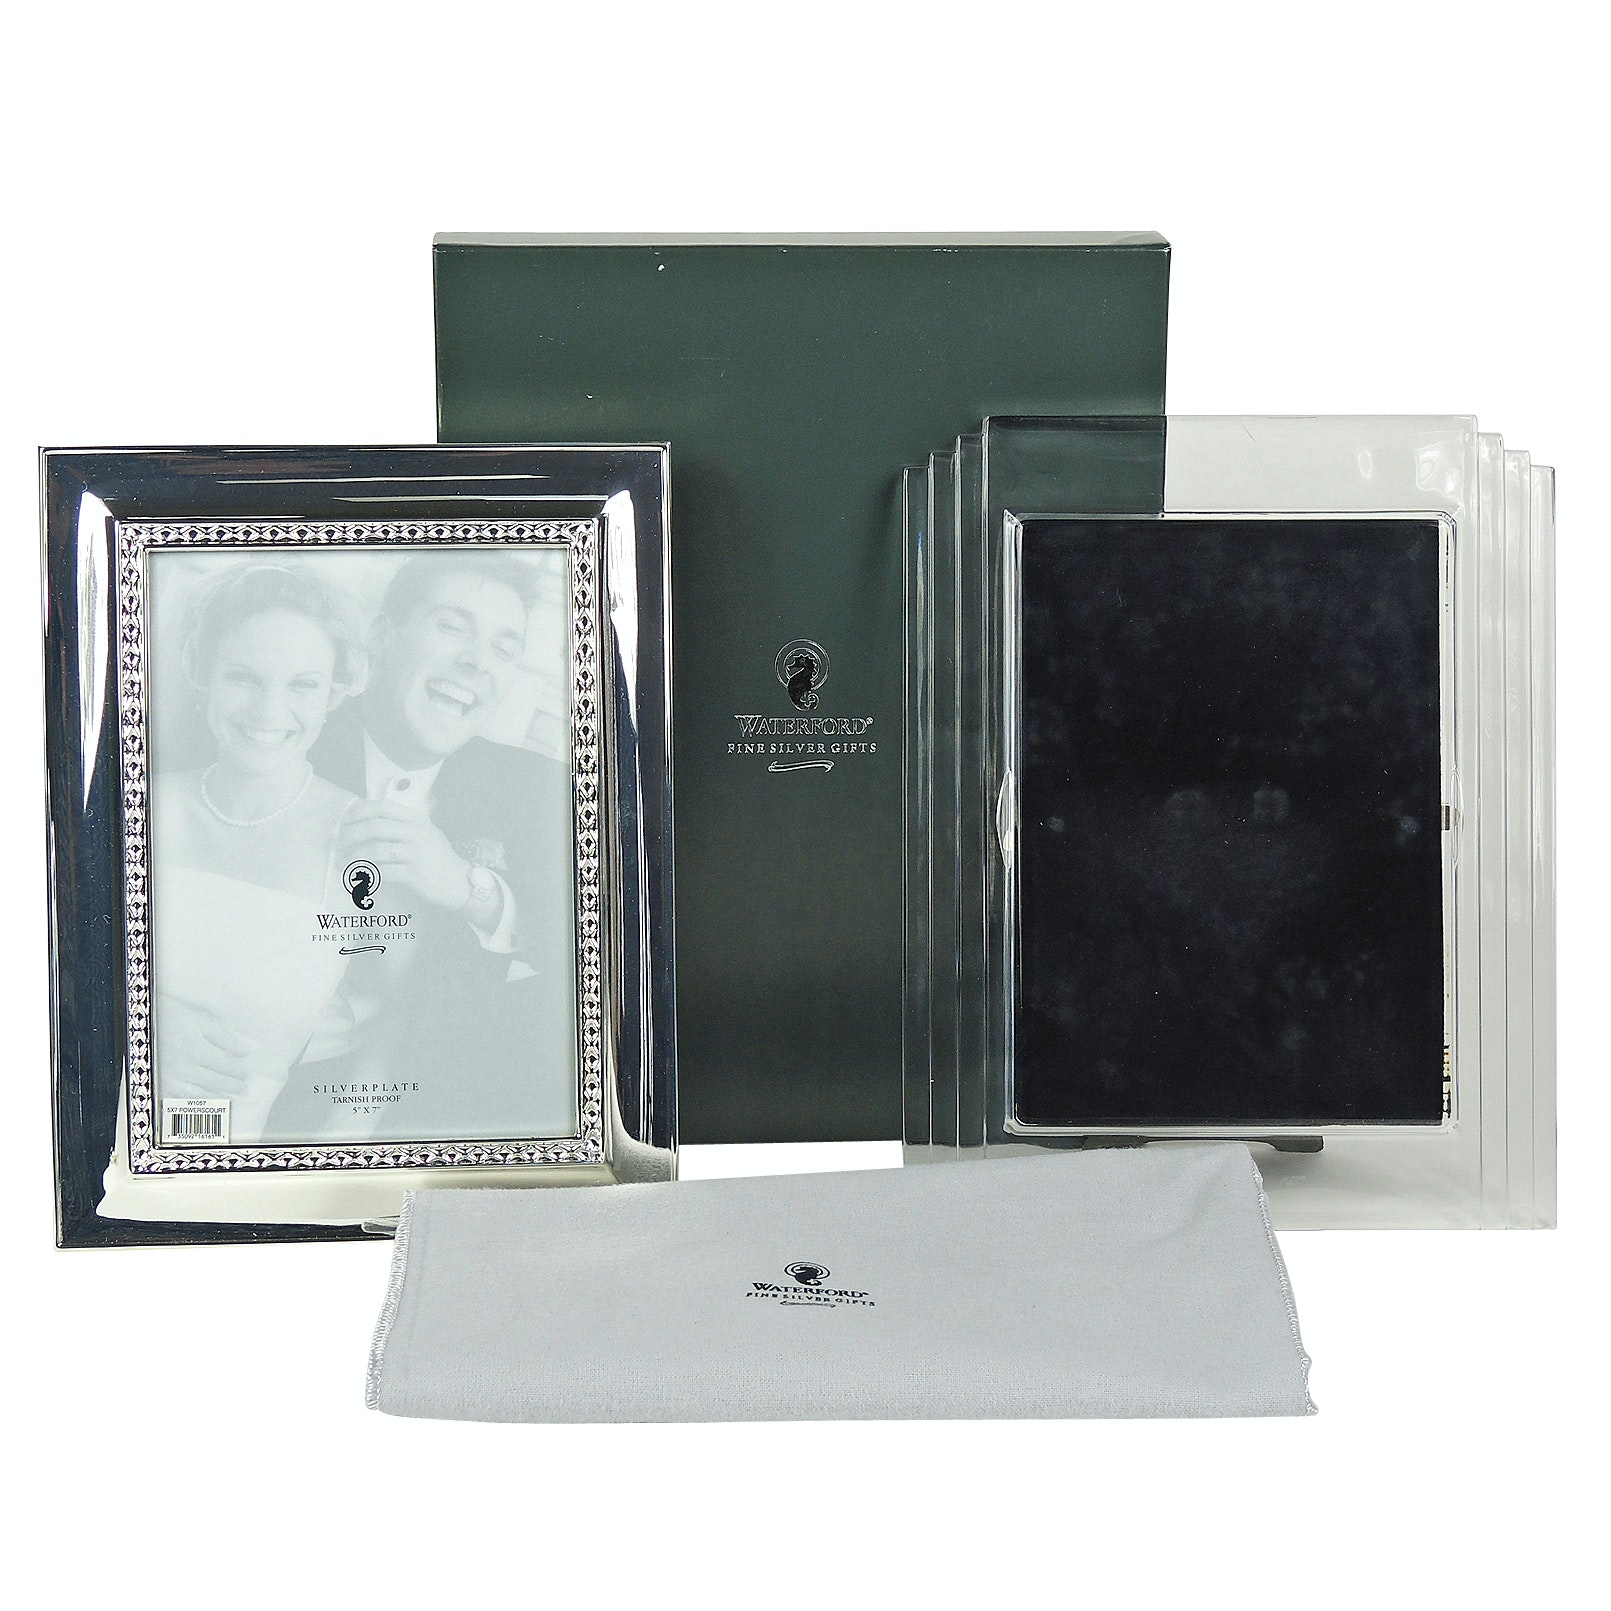 Waterford Crystal and Silver Plated Desk Frames